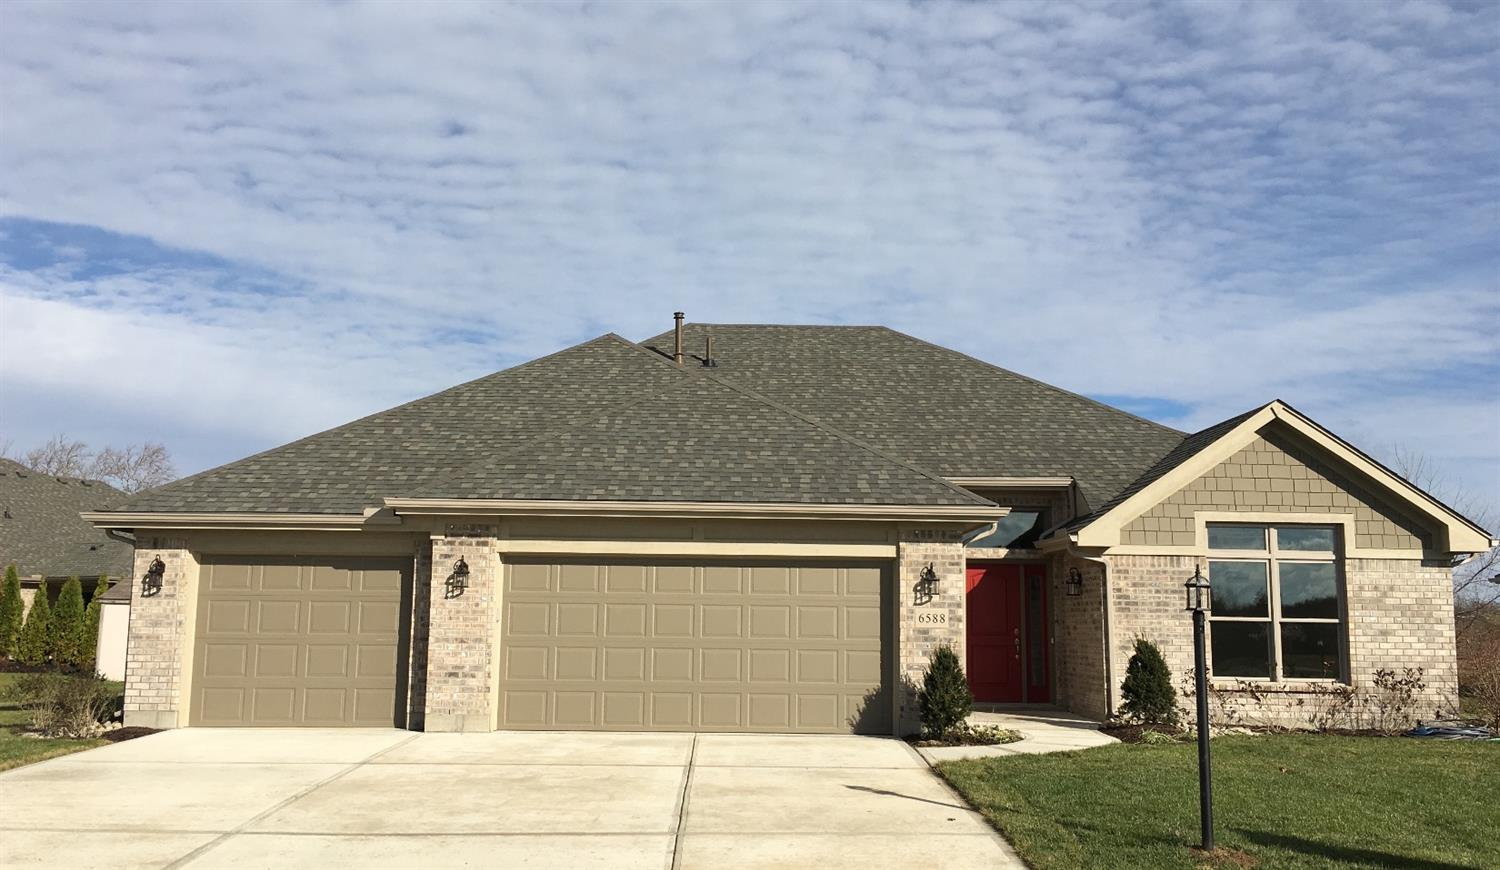 6588 Rising Sun Ct Wayne Twp. (Warren Co.), OH